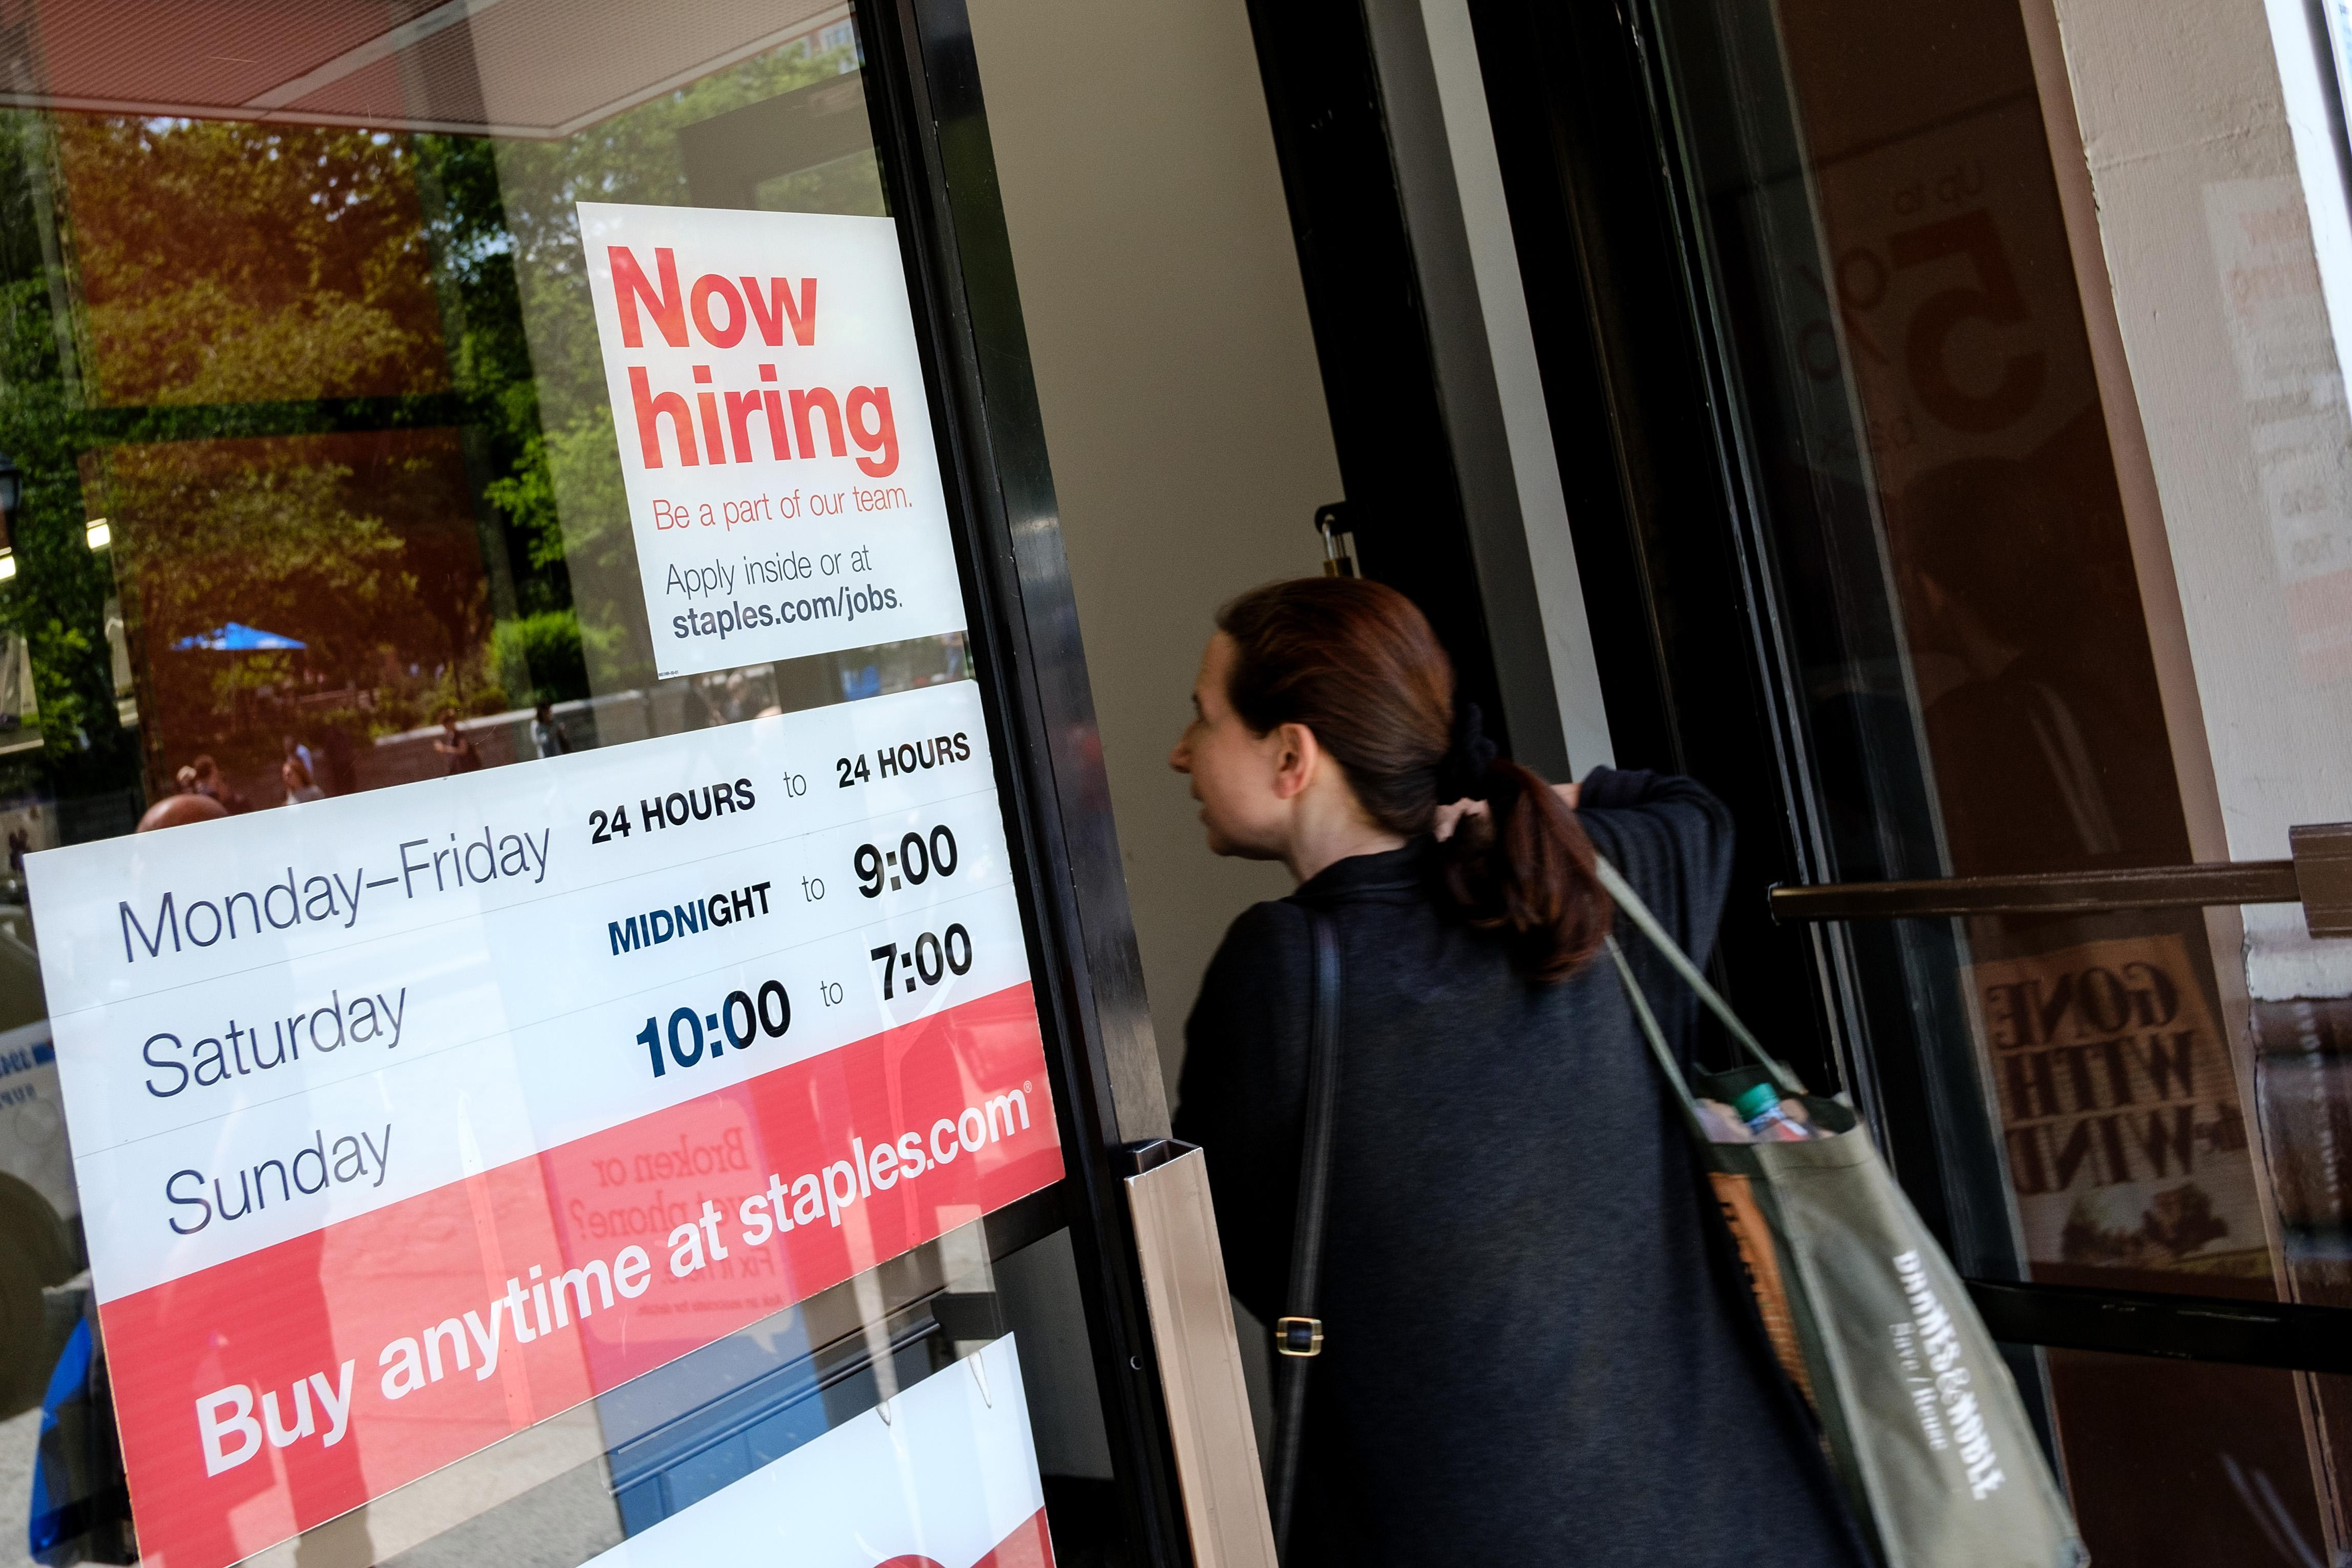 NEW YORK, NY - JUNE 2: A 'now hiring' sign is displayed on the front entrance to a Staples store,  June 2, 2017 in New York City. While U.S. unemployment has hit it lowest level since 2001 at 4.3 percent for May, the U.S. economy added only 138,000 jobs last month and many Americans have stopped looking for work. (Photo by Drew Angerer/Getty Images)